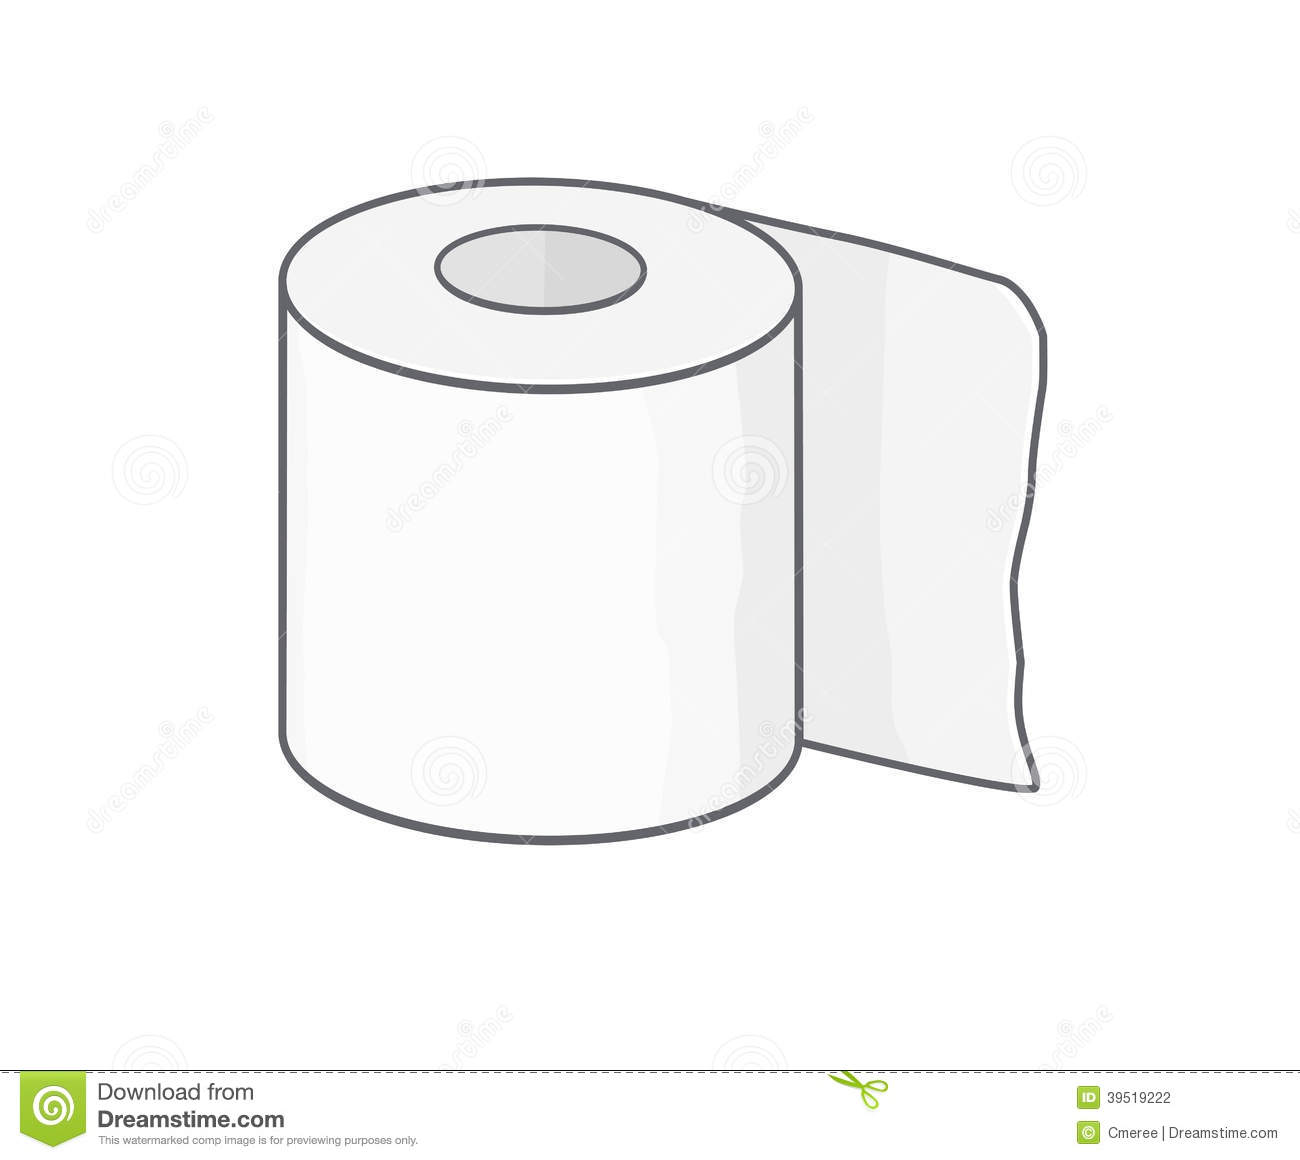 Toilet Paper Stock Vector - Image: 39519222